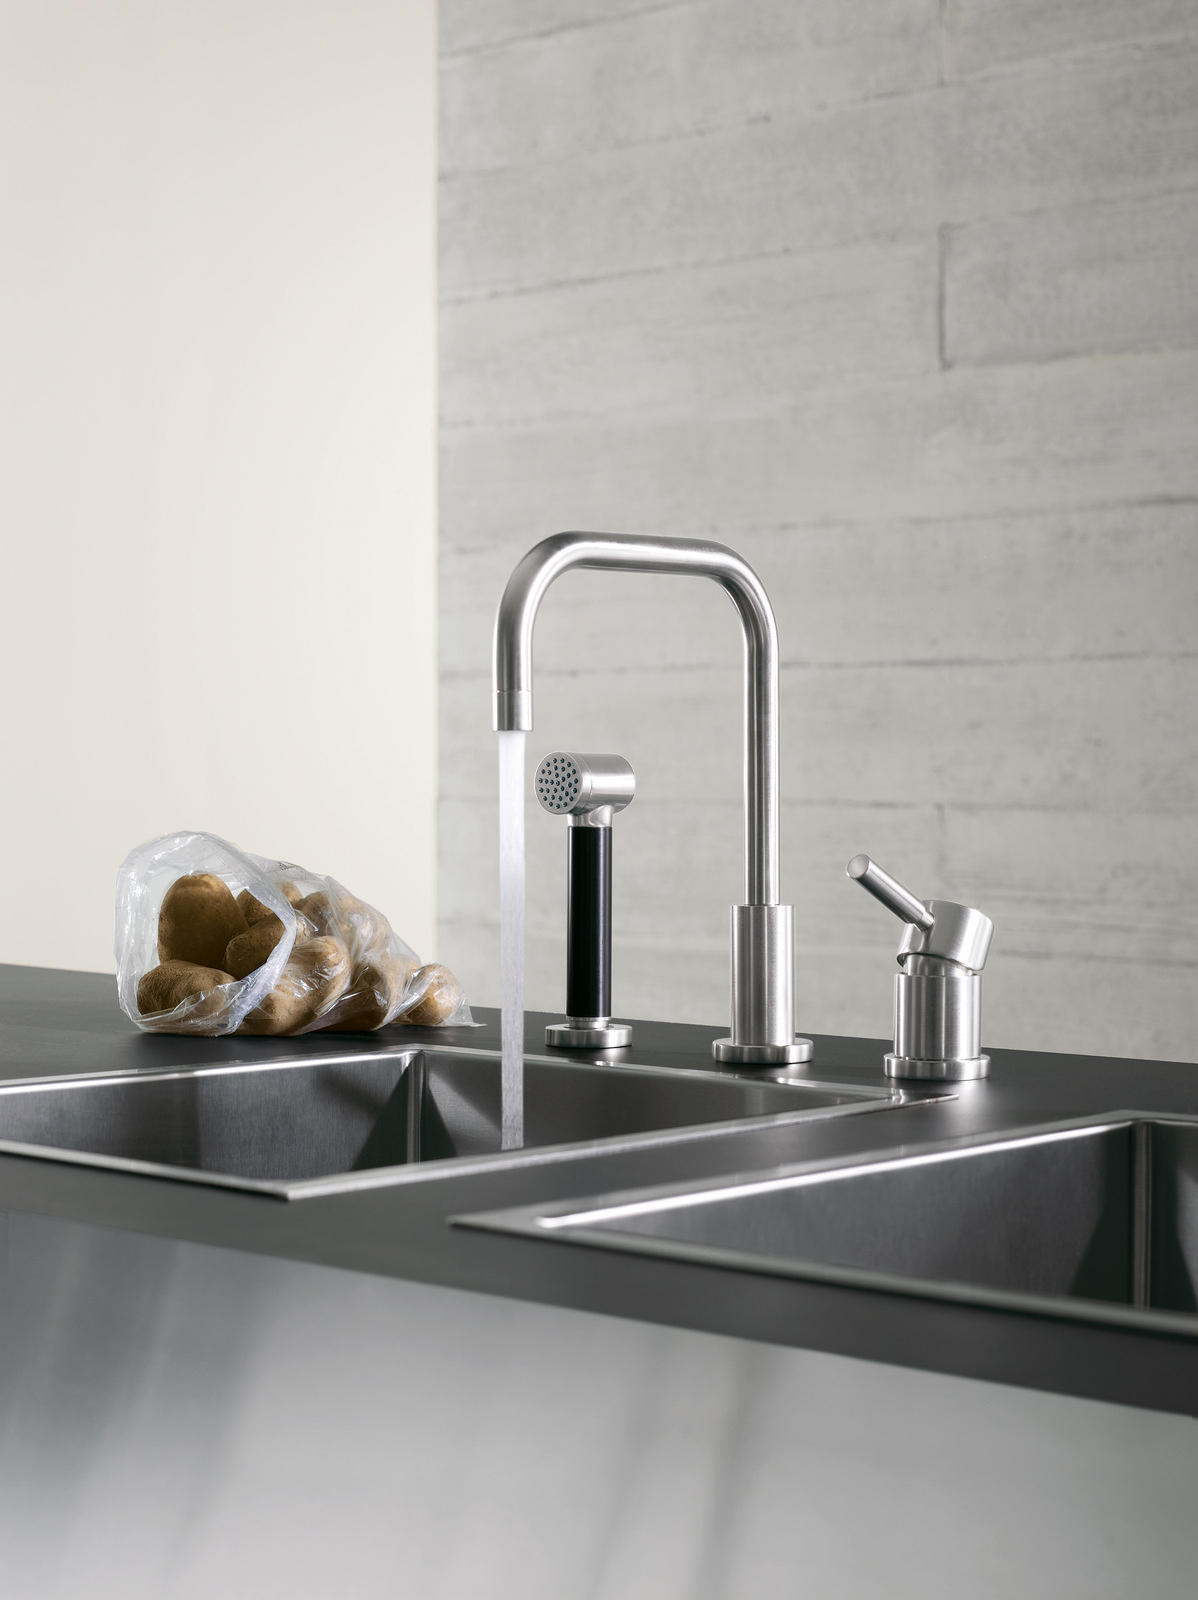 wall mounted mixer kitchen taps from. Black Bedroom Furniture Sets. Home Design Ideas